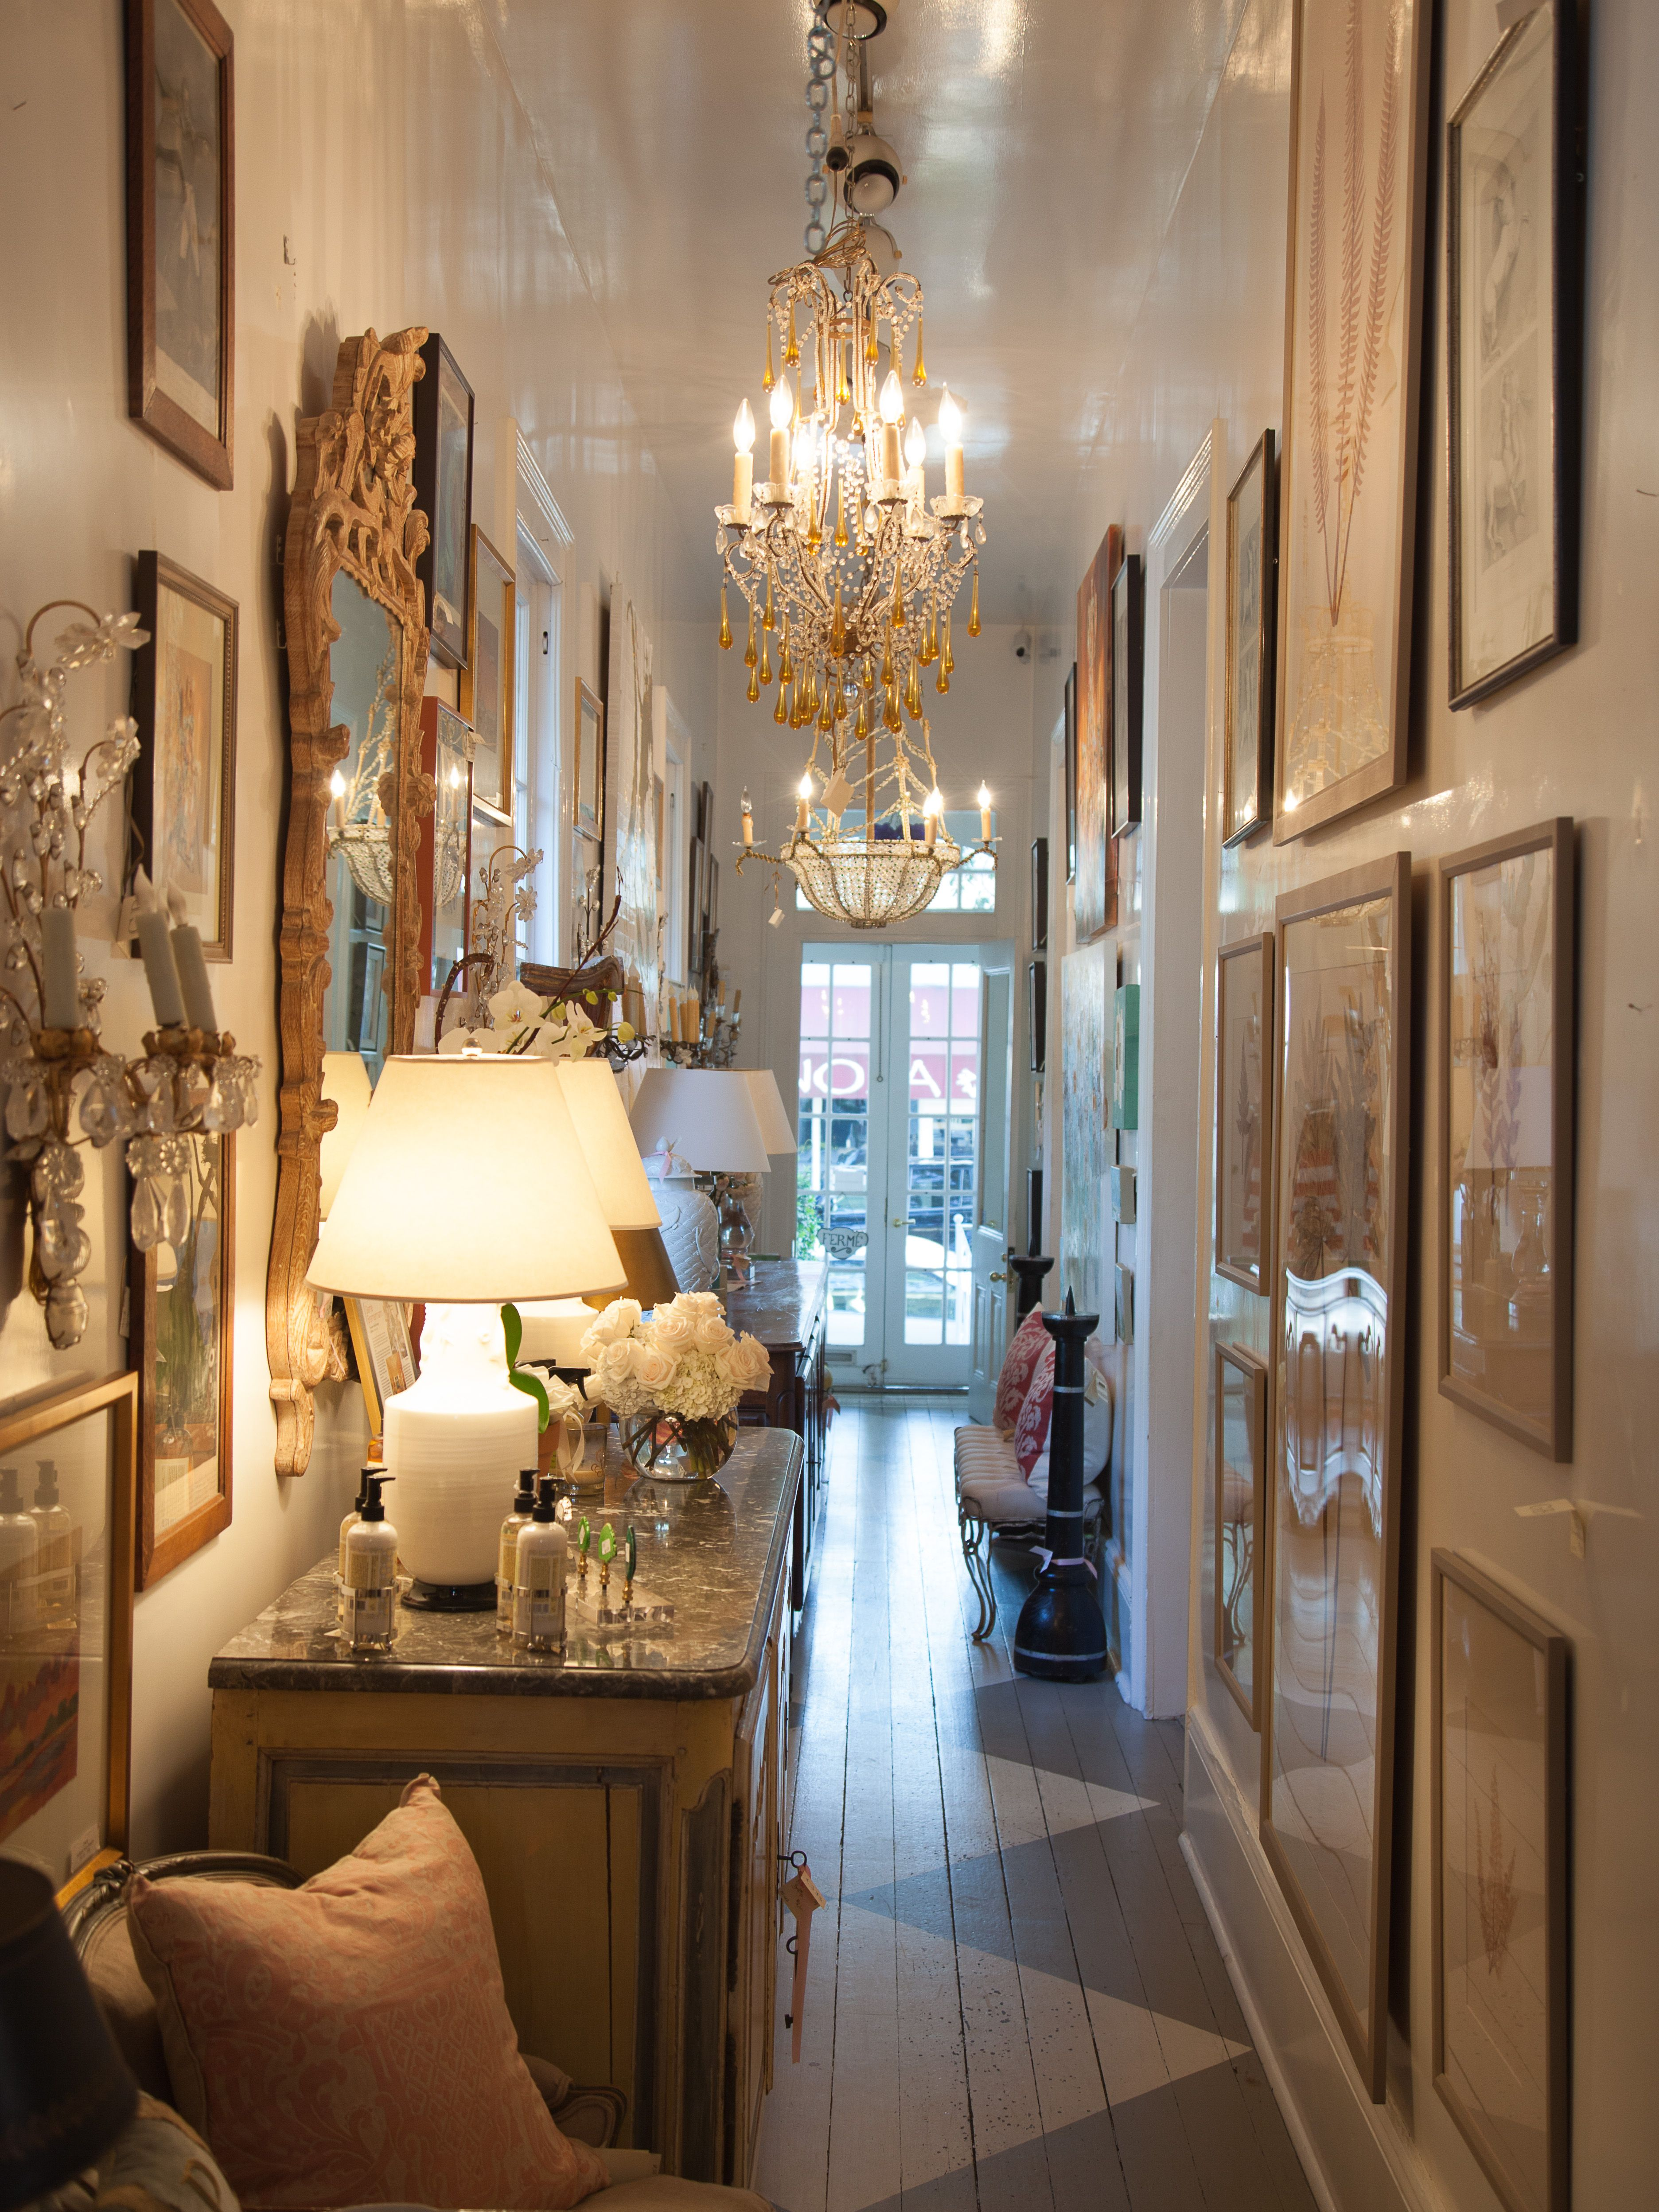 New Orleans hallway | New orleans decor, Home, Home decor